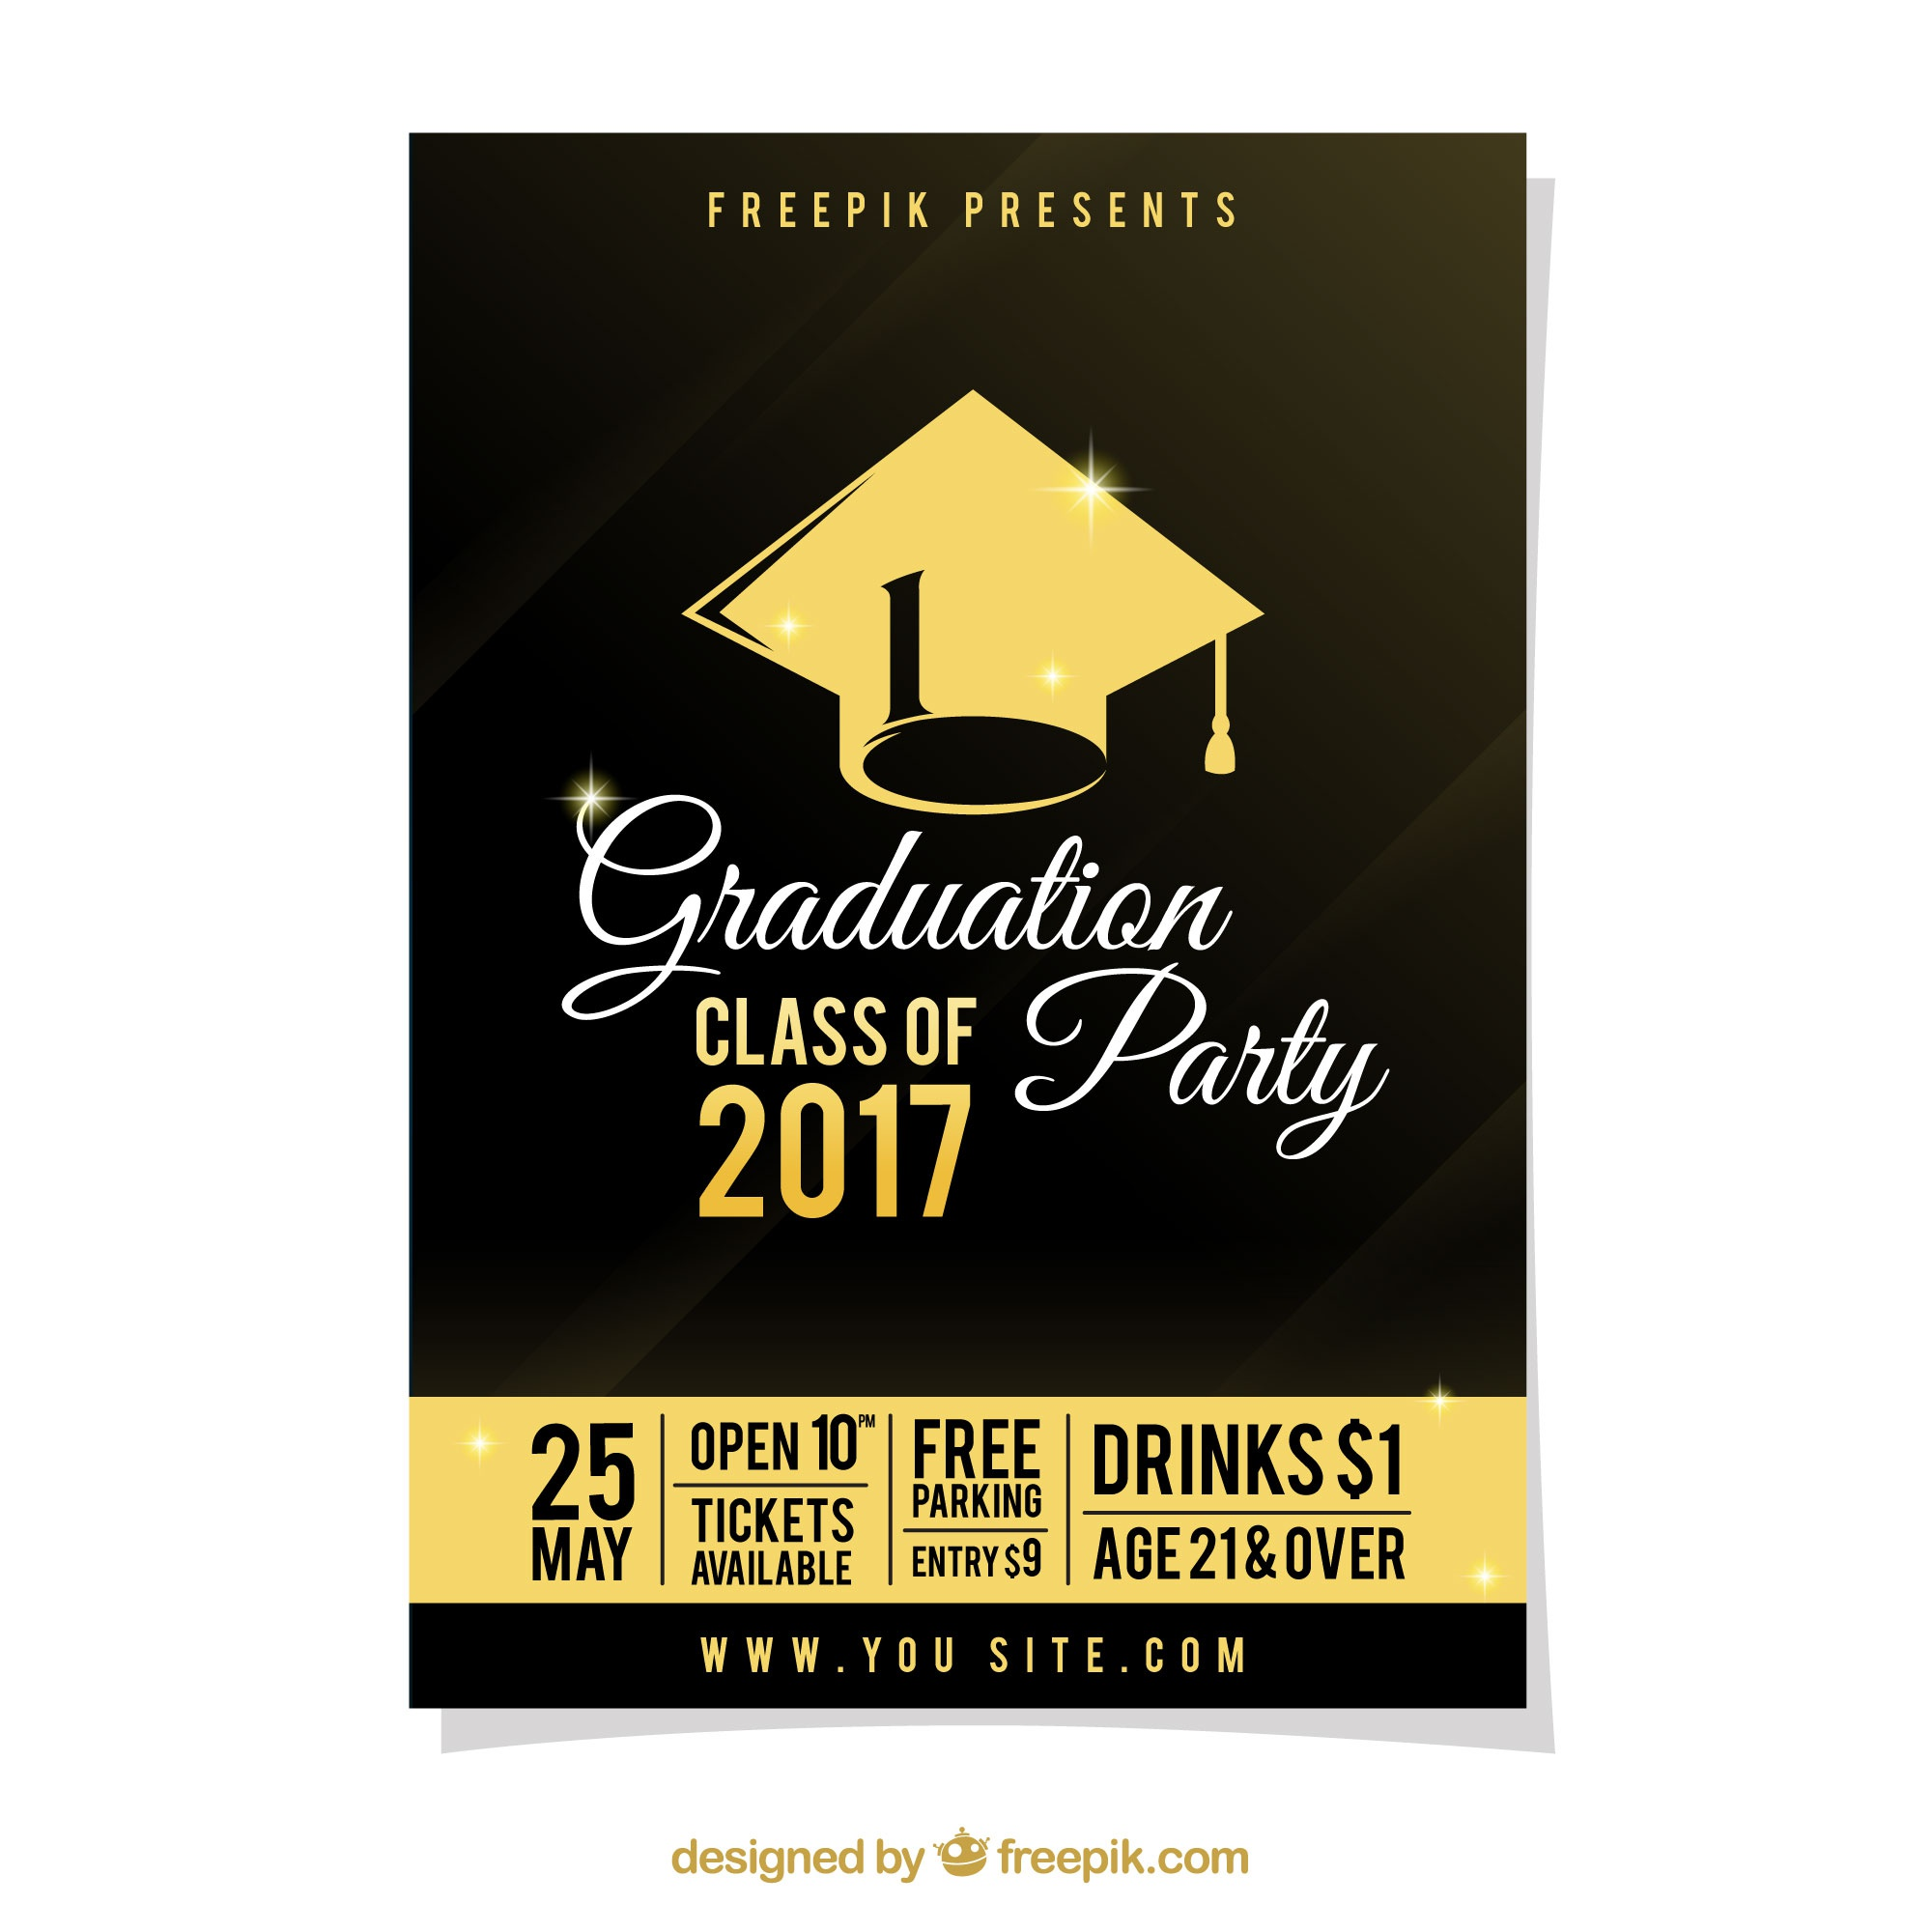 Graduation party poster with gold details